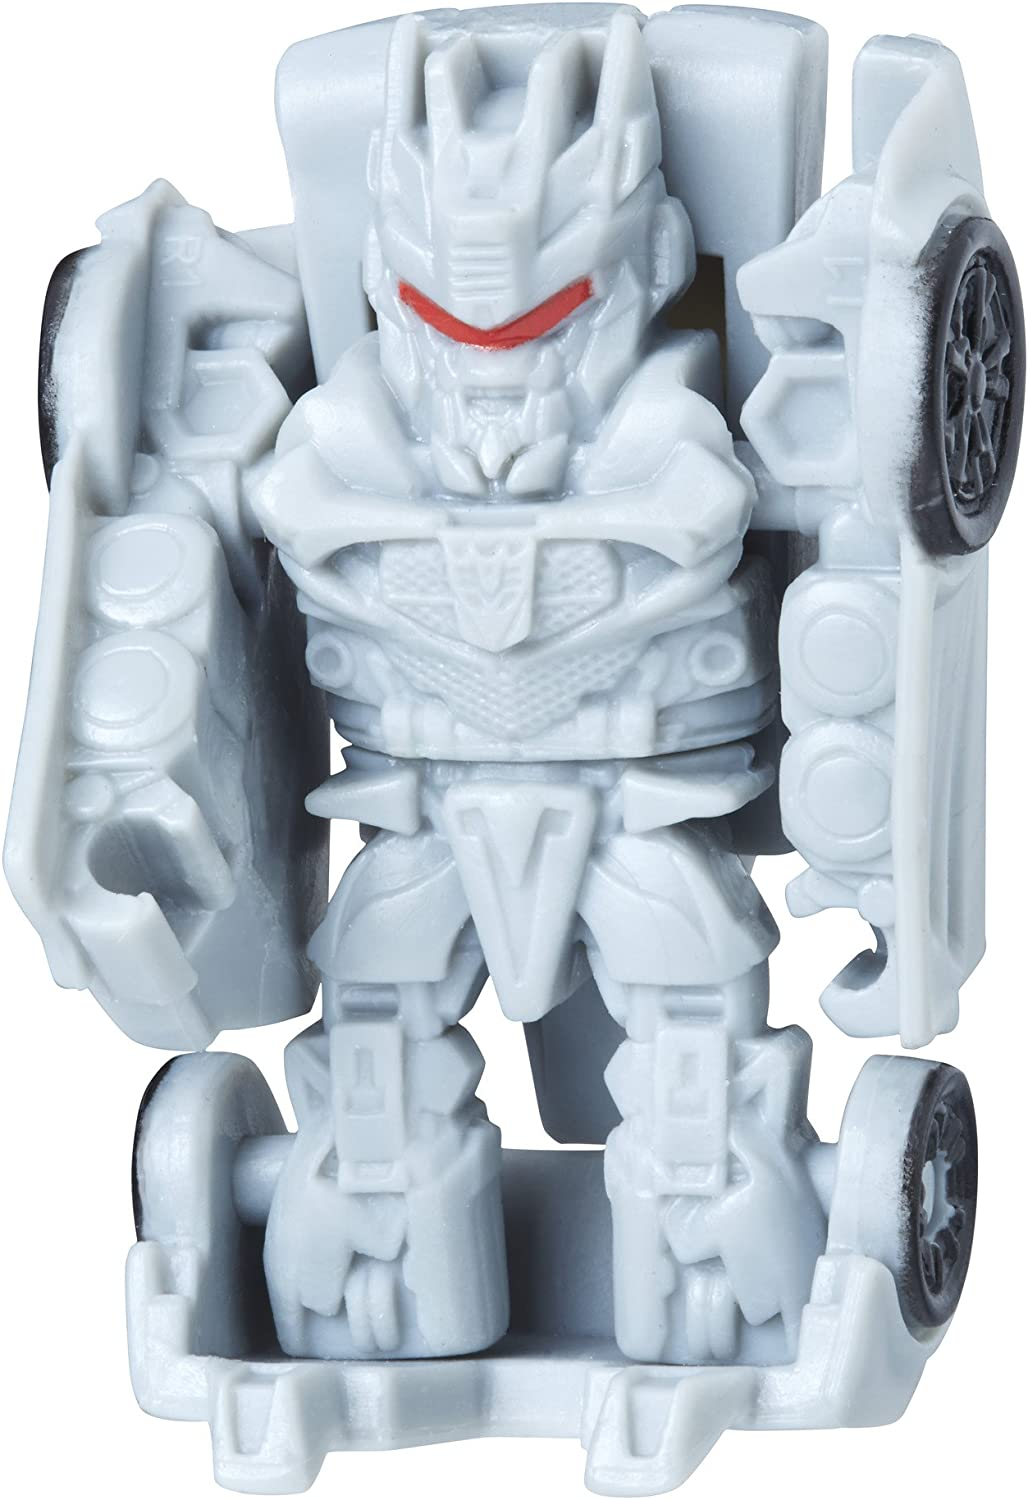 Transformers C0882 The Last Knight Tiny Turbo Changers Series 1 Blind Bag